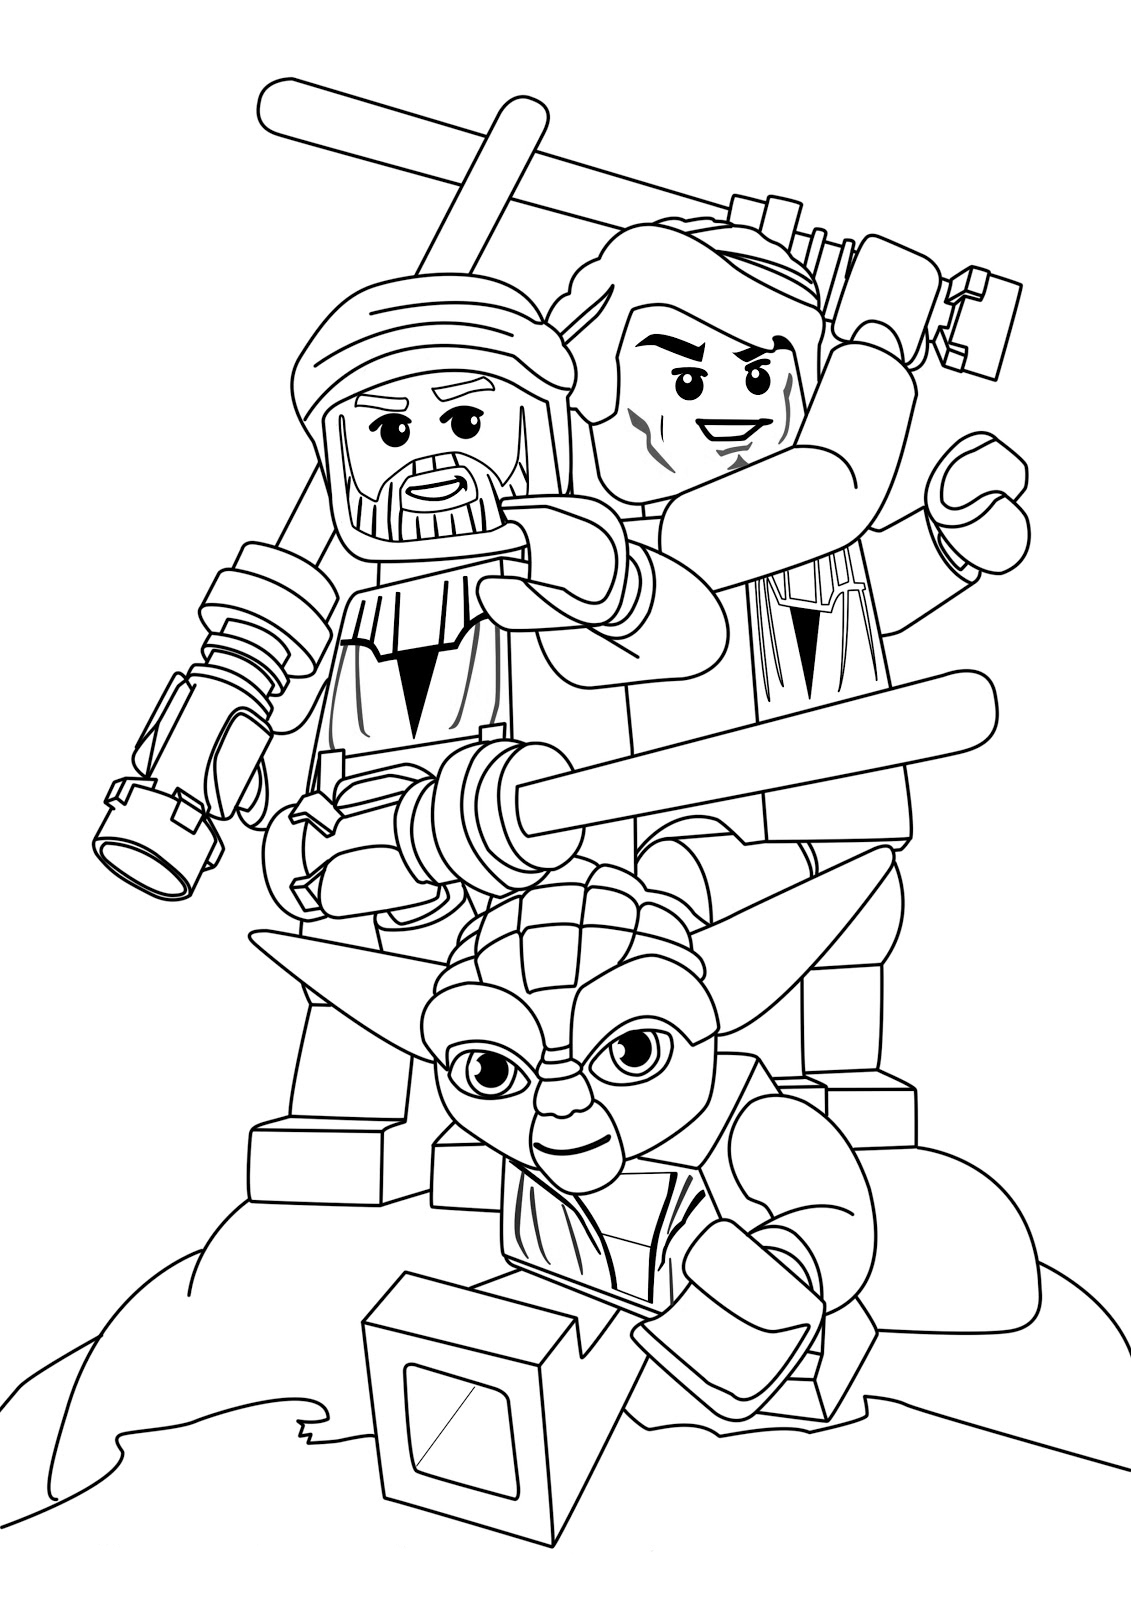 free lego star wars printables lego star wars coloring pages best coloring pages for kids wars star lego printables free